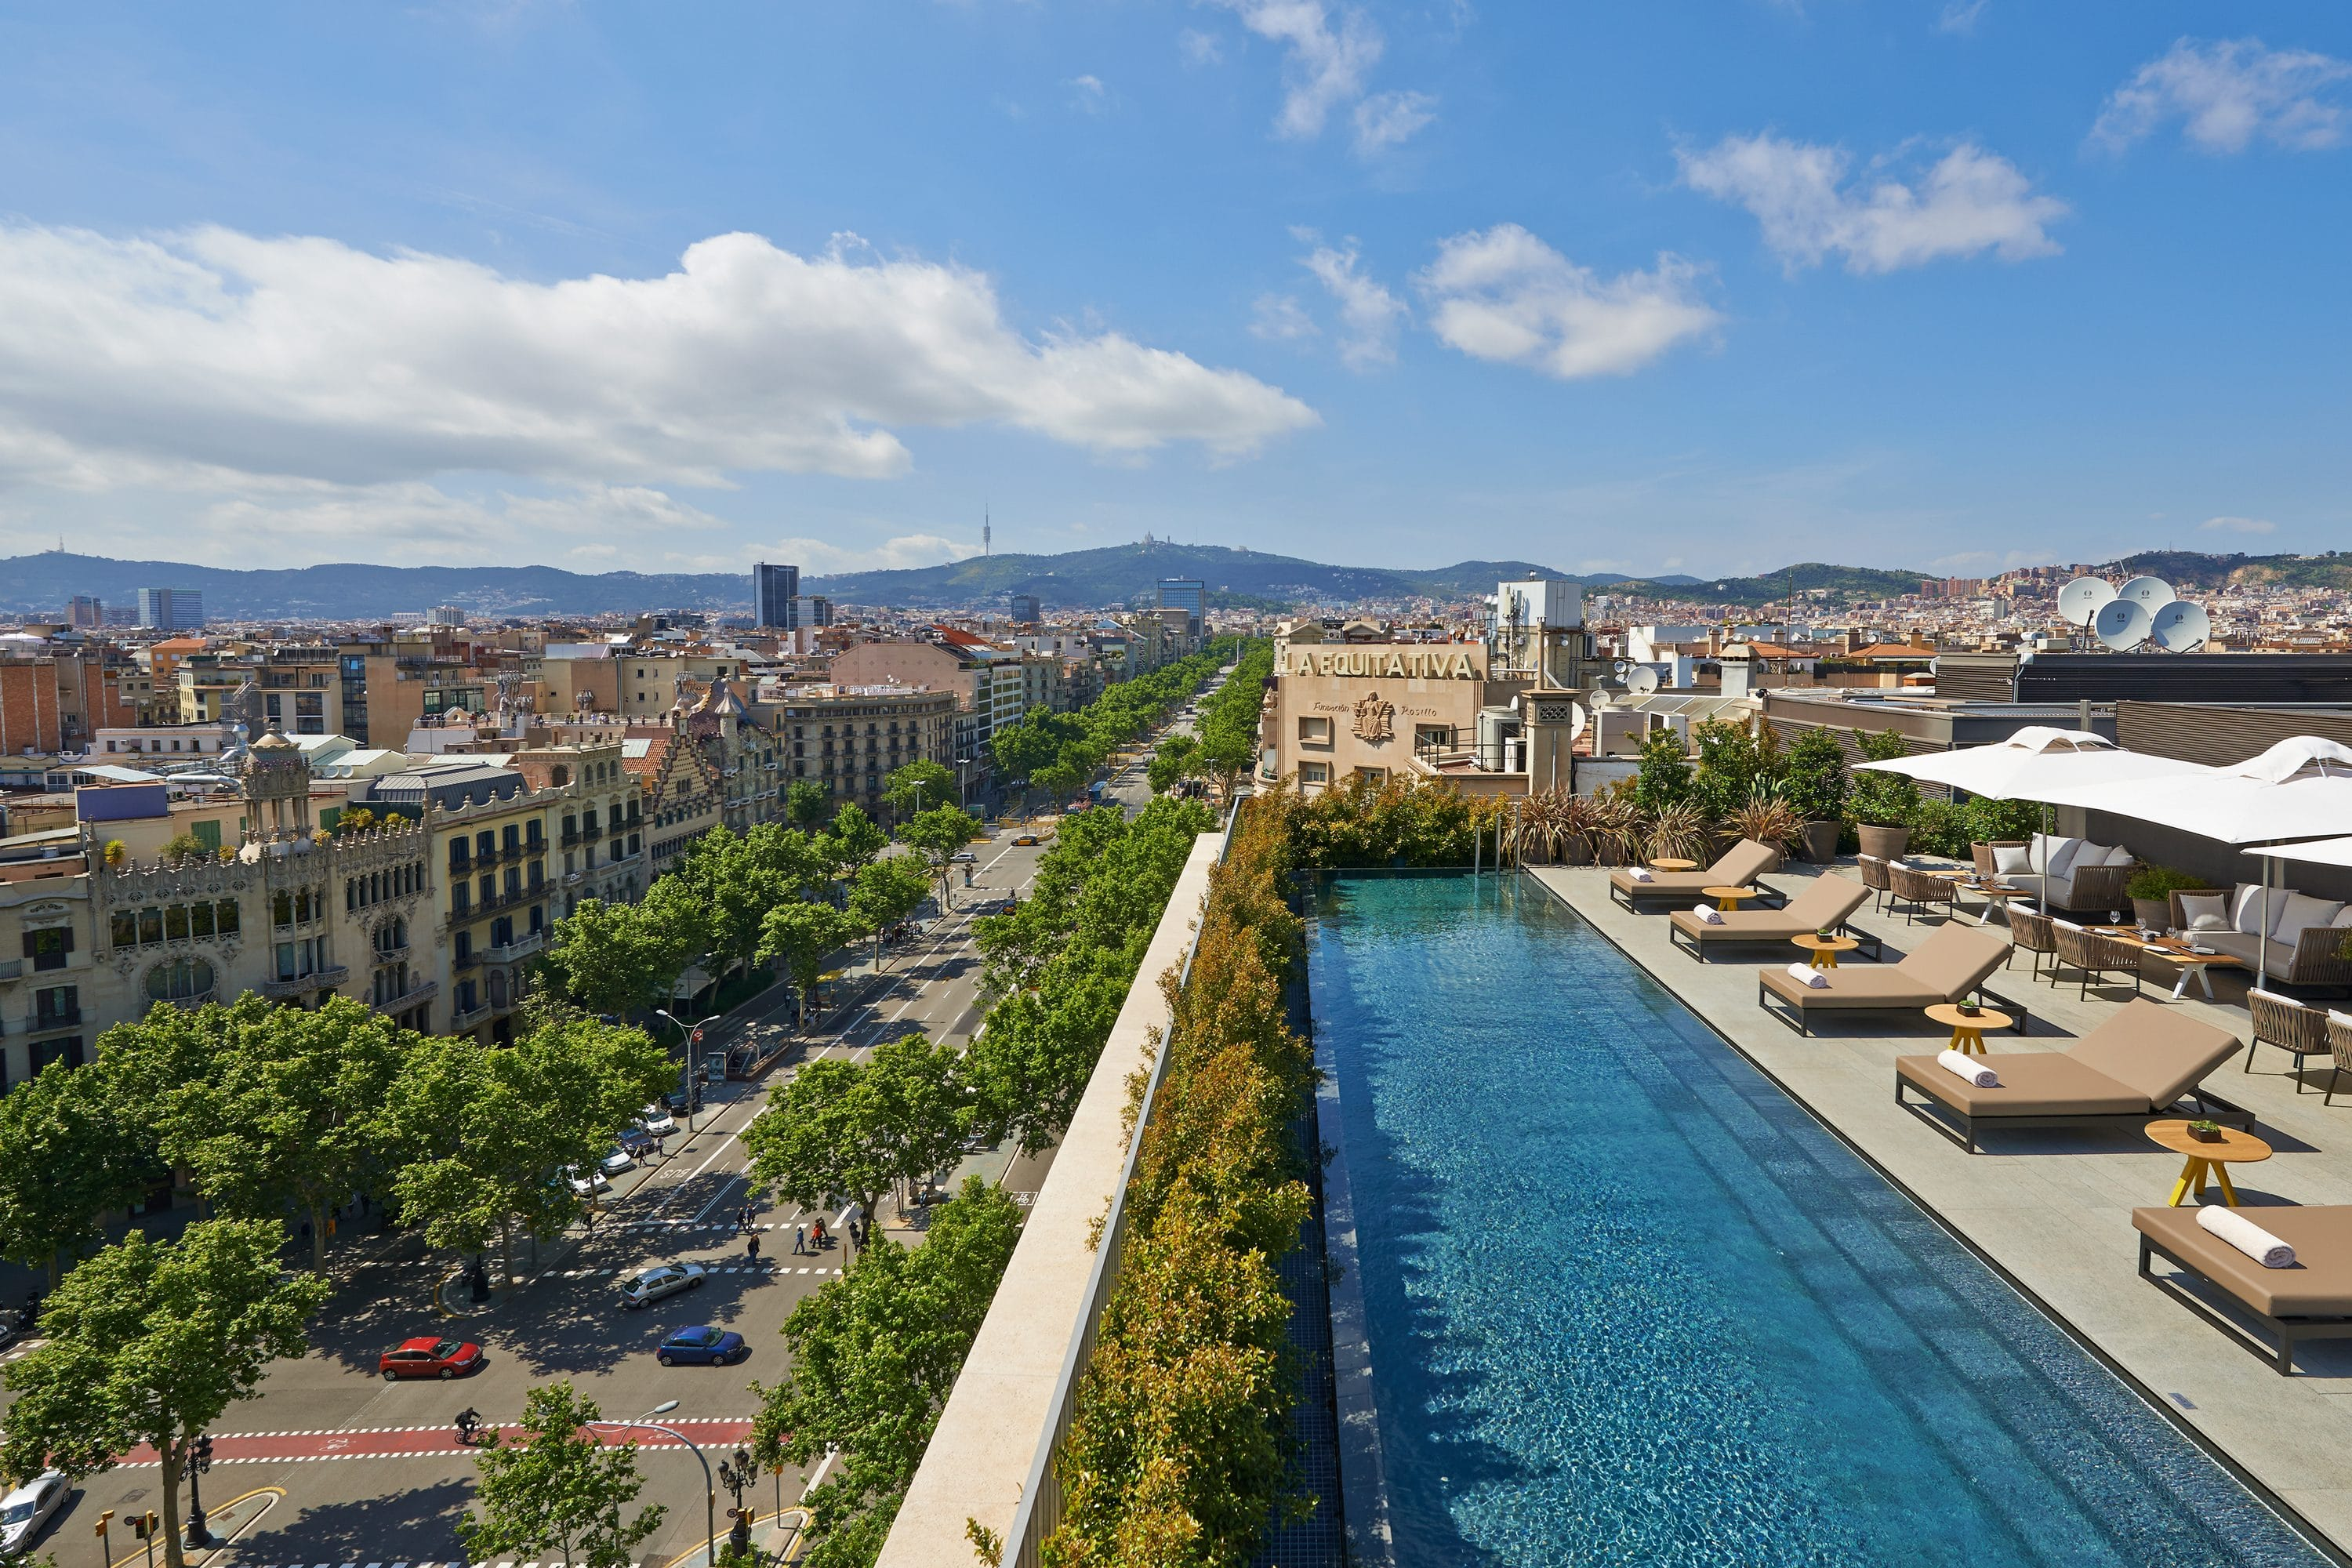 Rooftop pool and view of city at Mandarin Oriental, Barcelona